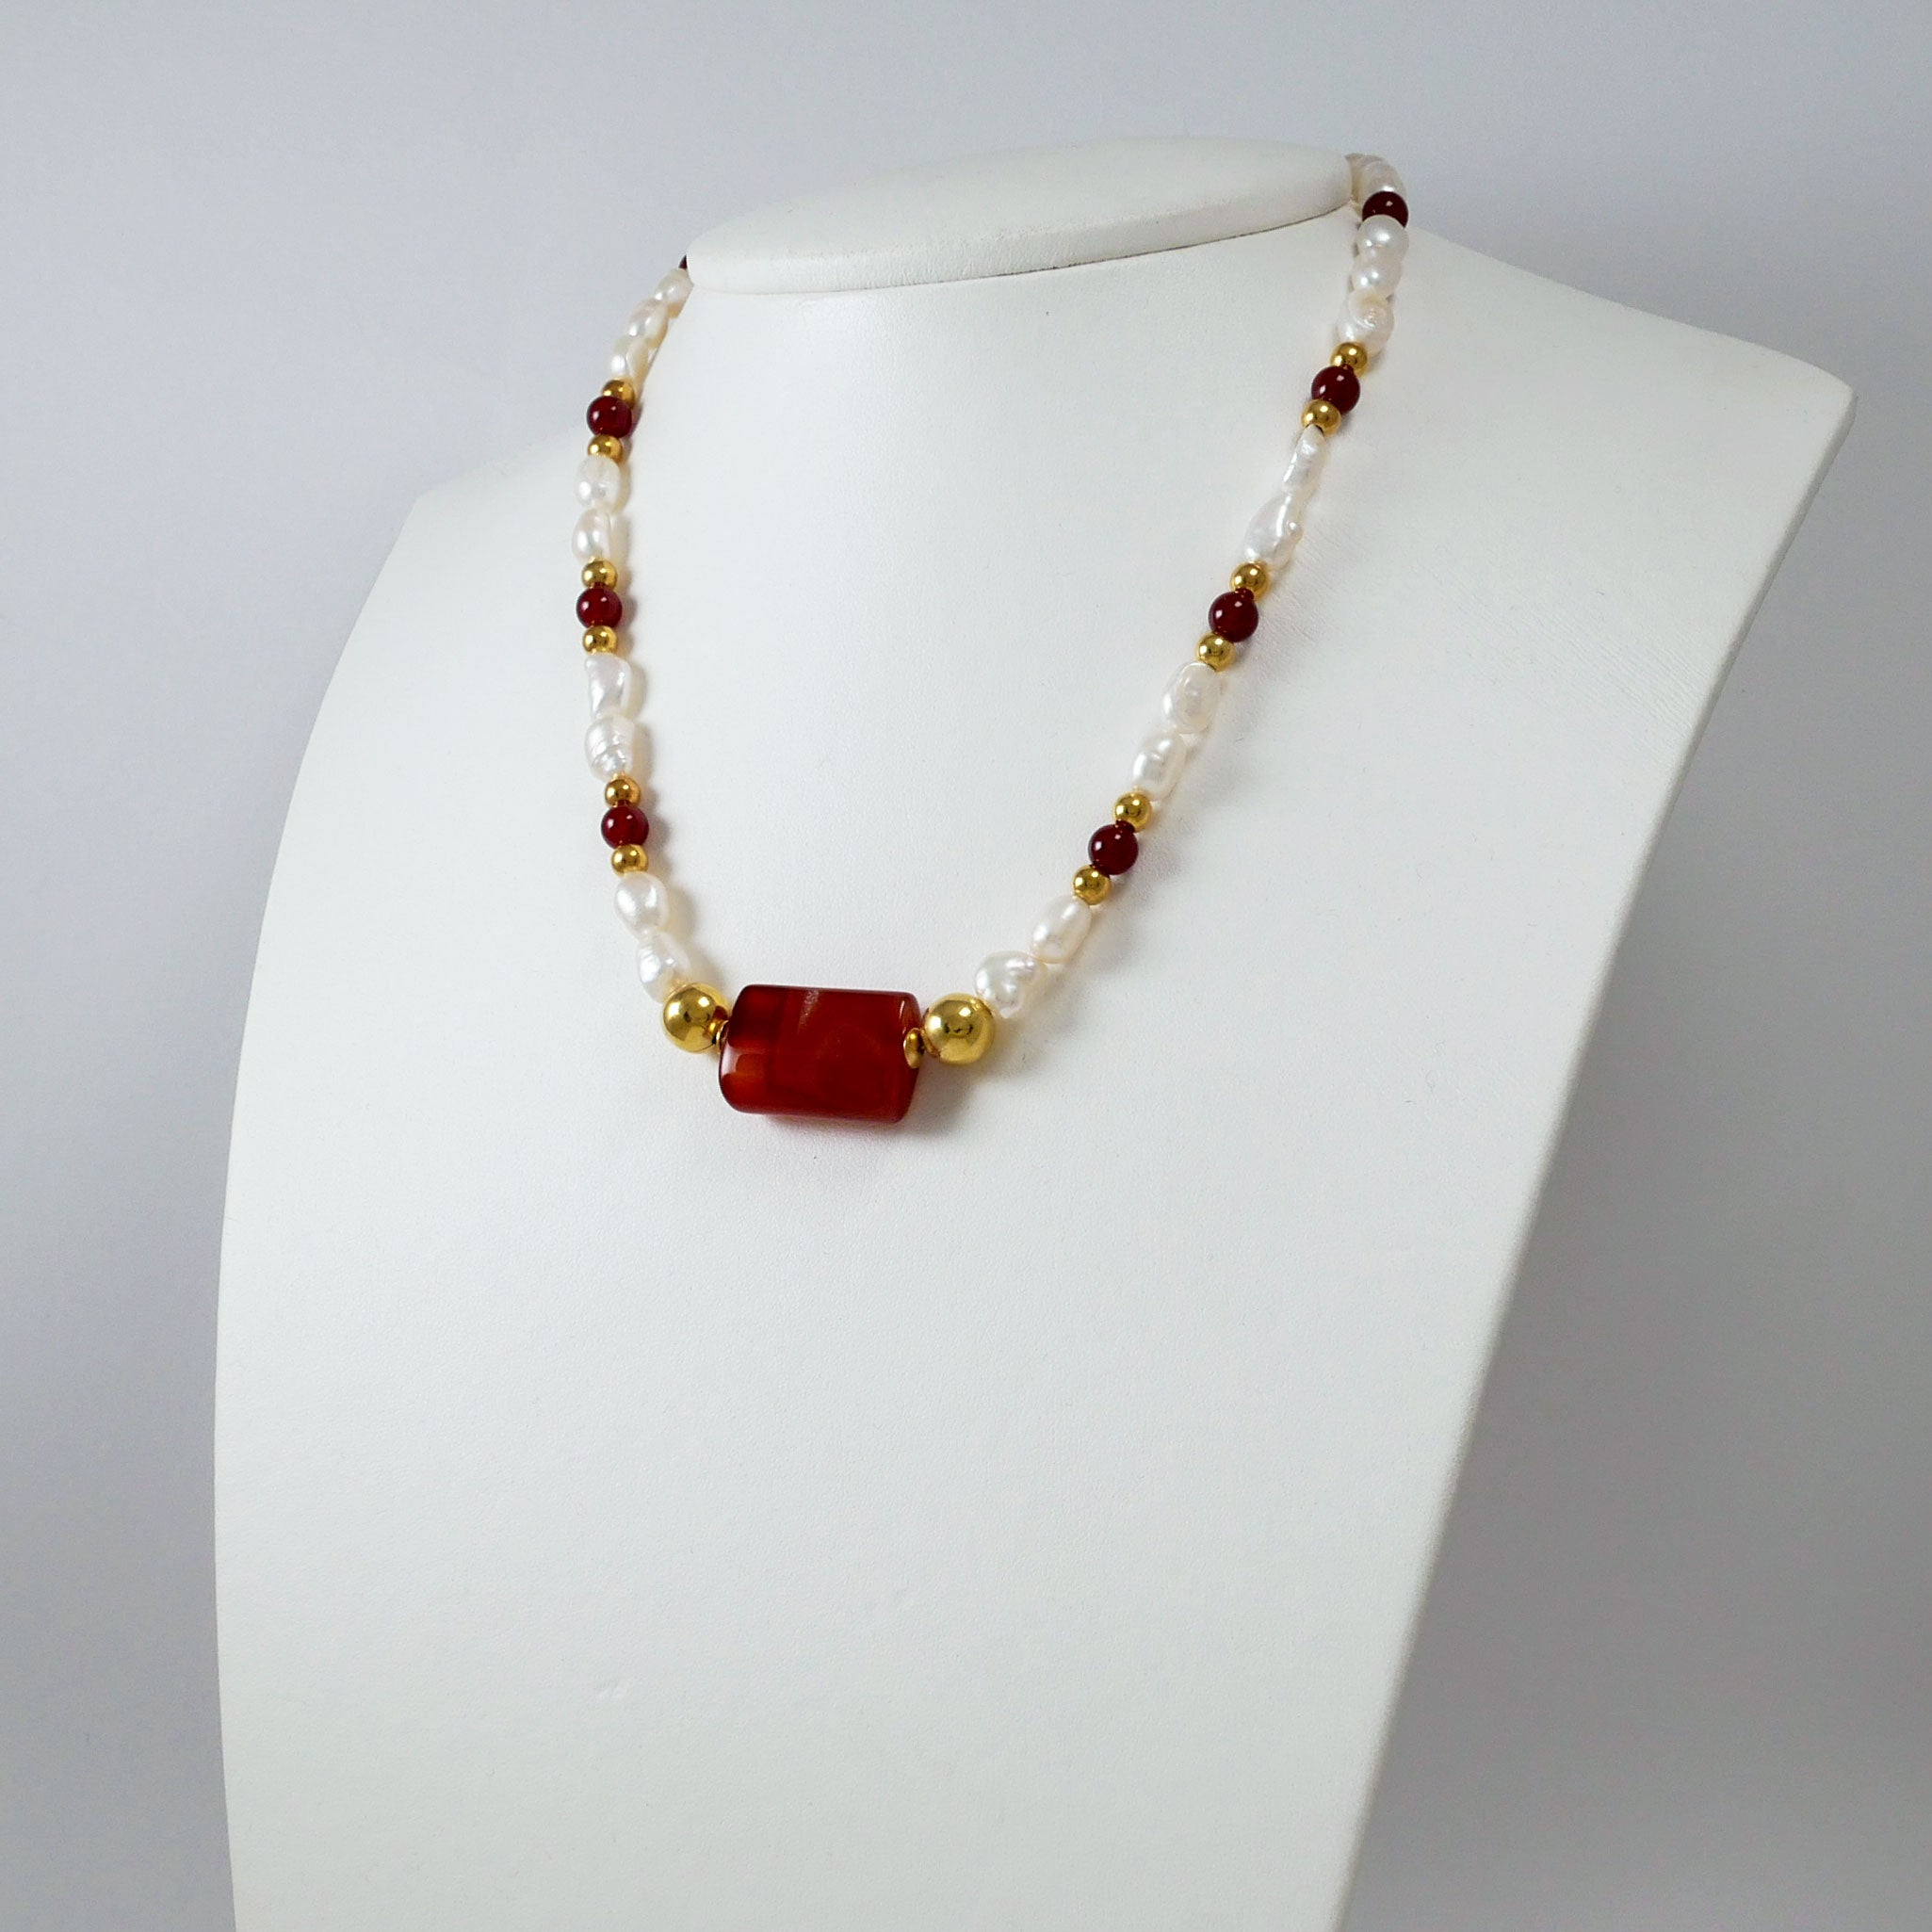 Pearls, Carnelians & Gold Plated Silver Necklace (II)